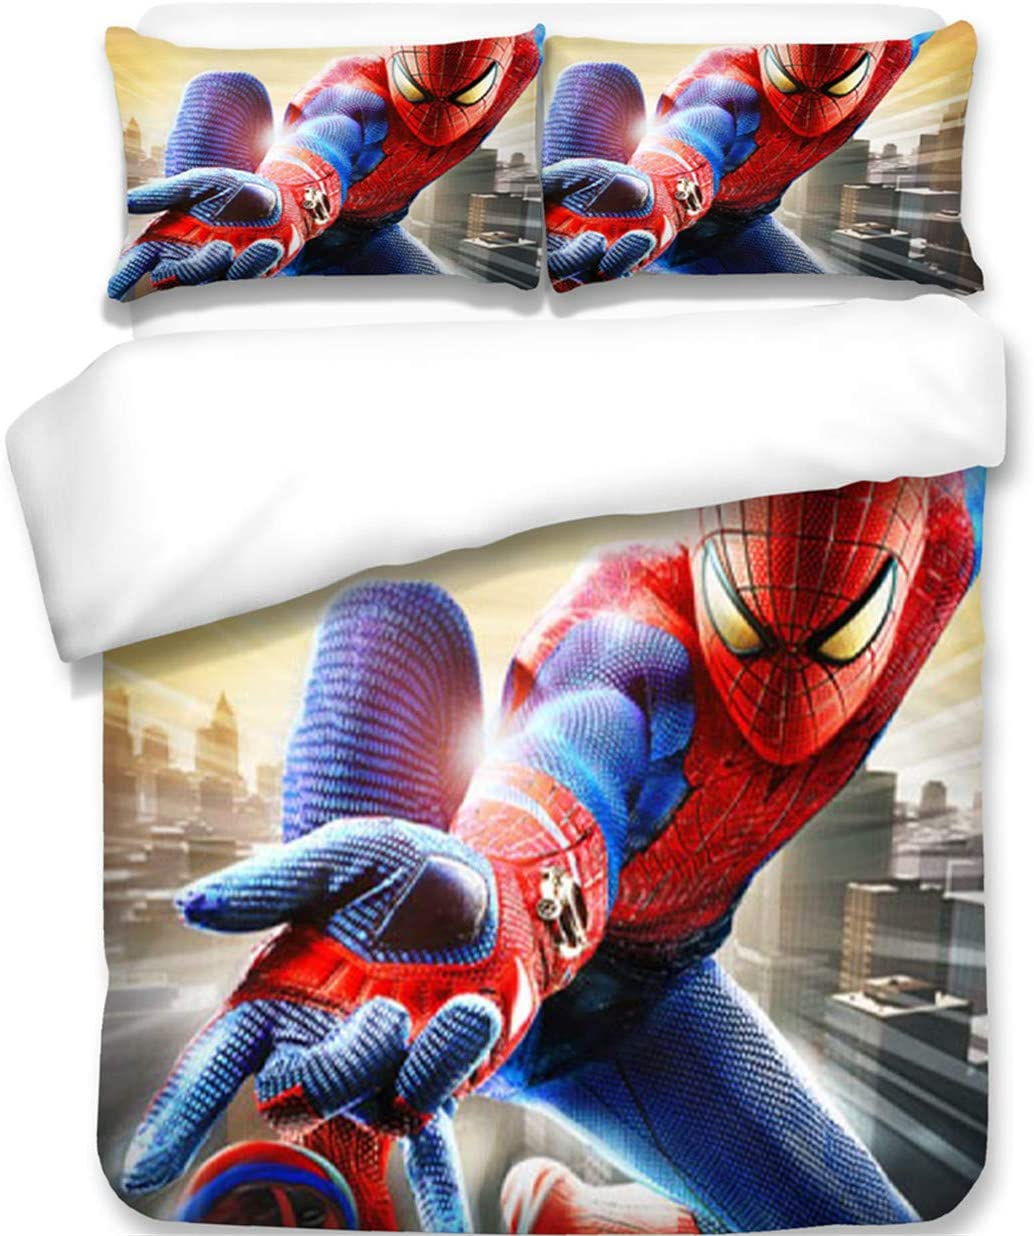 AXIONG 3D Spider-Man Bedding Marvel Superhero Duvet Cover Set for Teen and Kids Bed Bedding Adult Student Duvet Cover Set 3 PCS 1 Duvet Cover 2 Pillowcases King Queen Full Twin Size